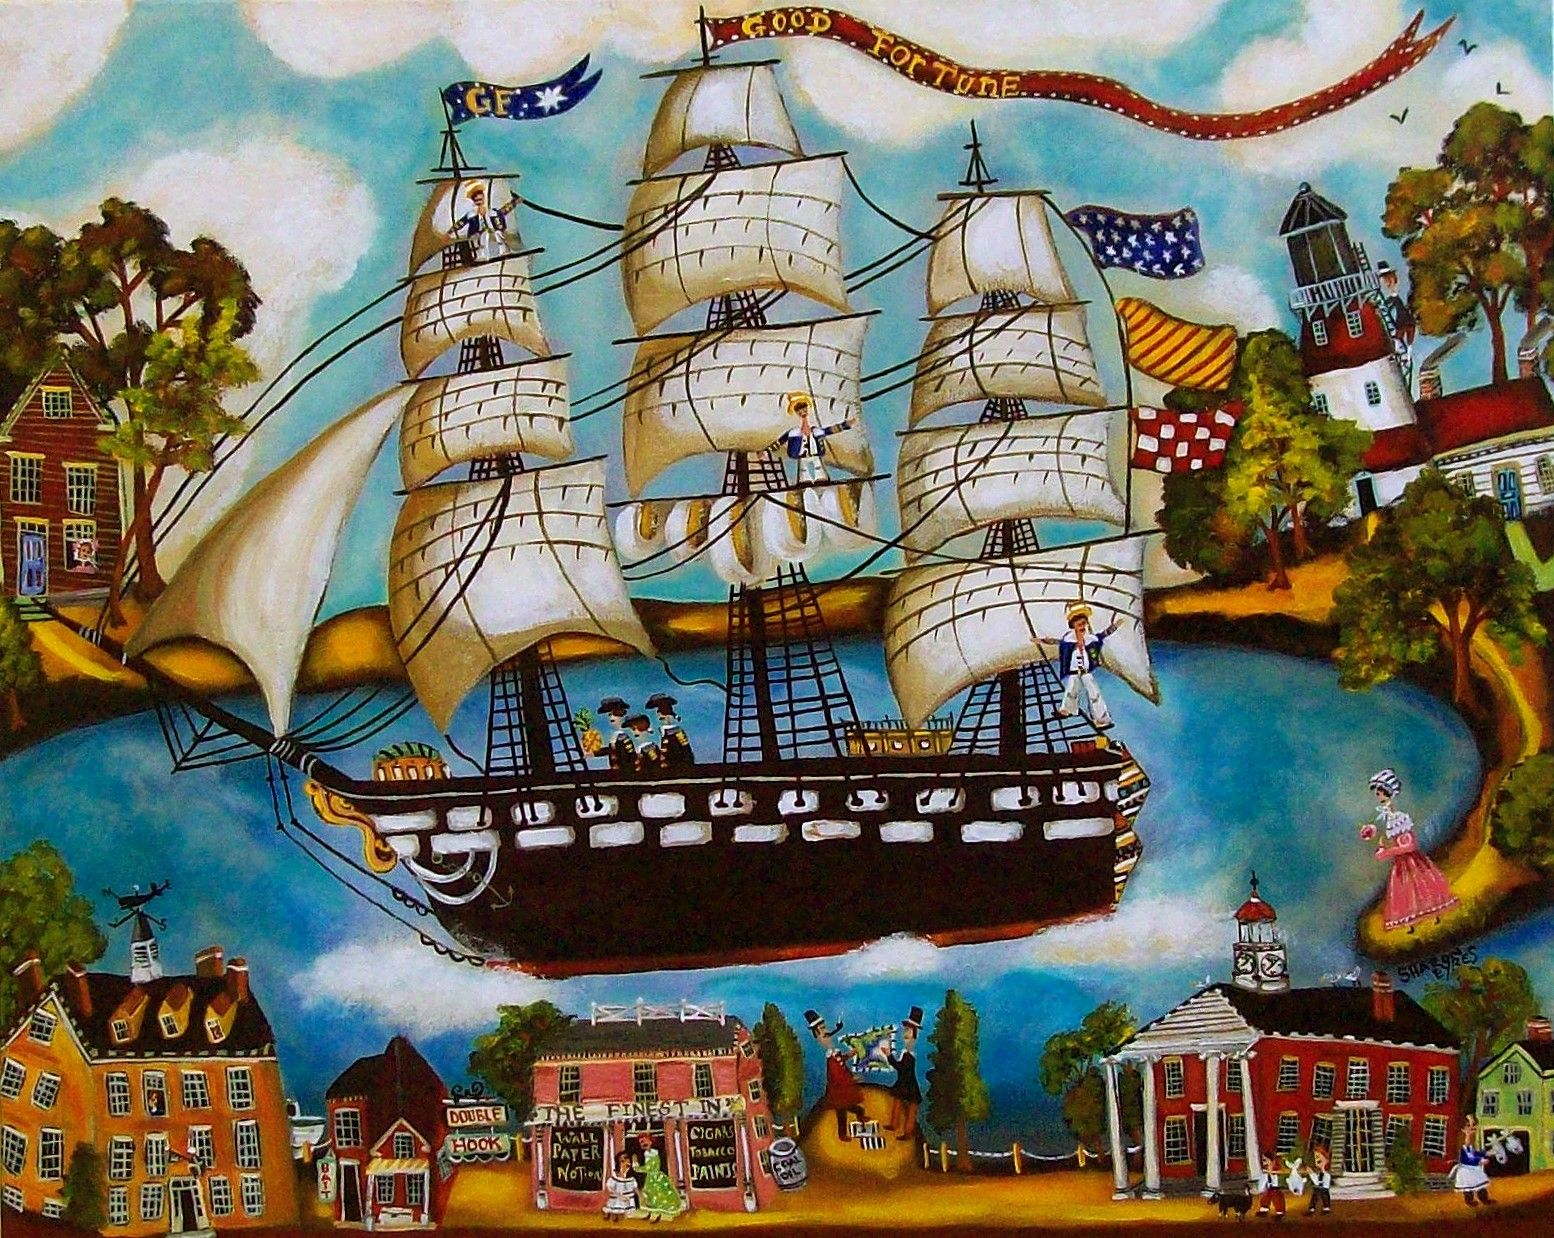 American Folk Art Seascape painted by artist Sharon Eyres